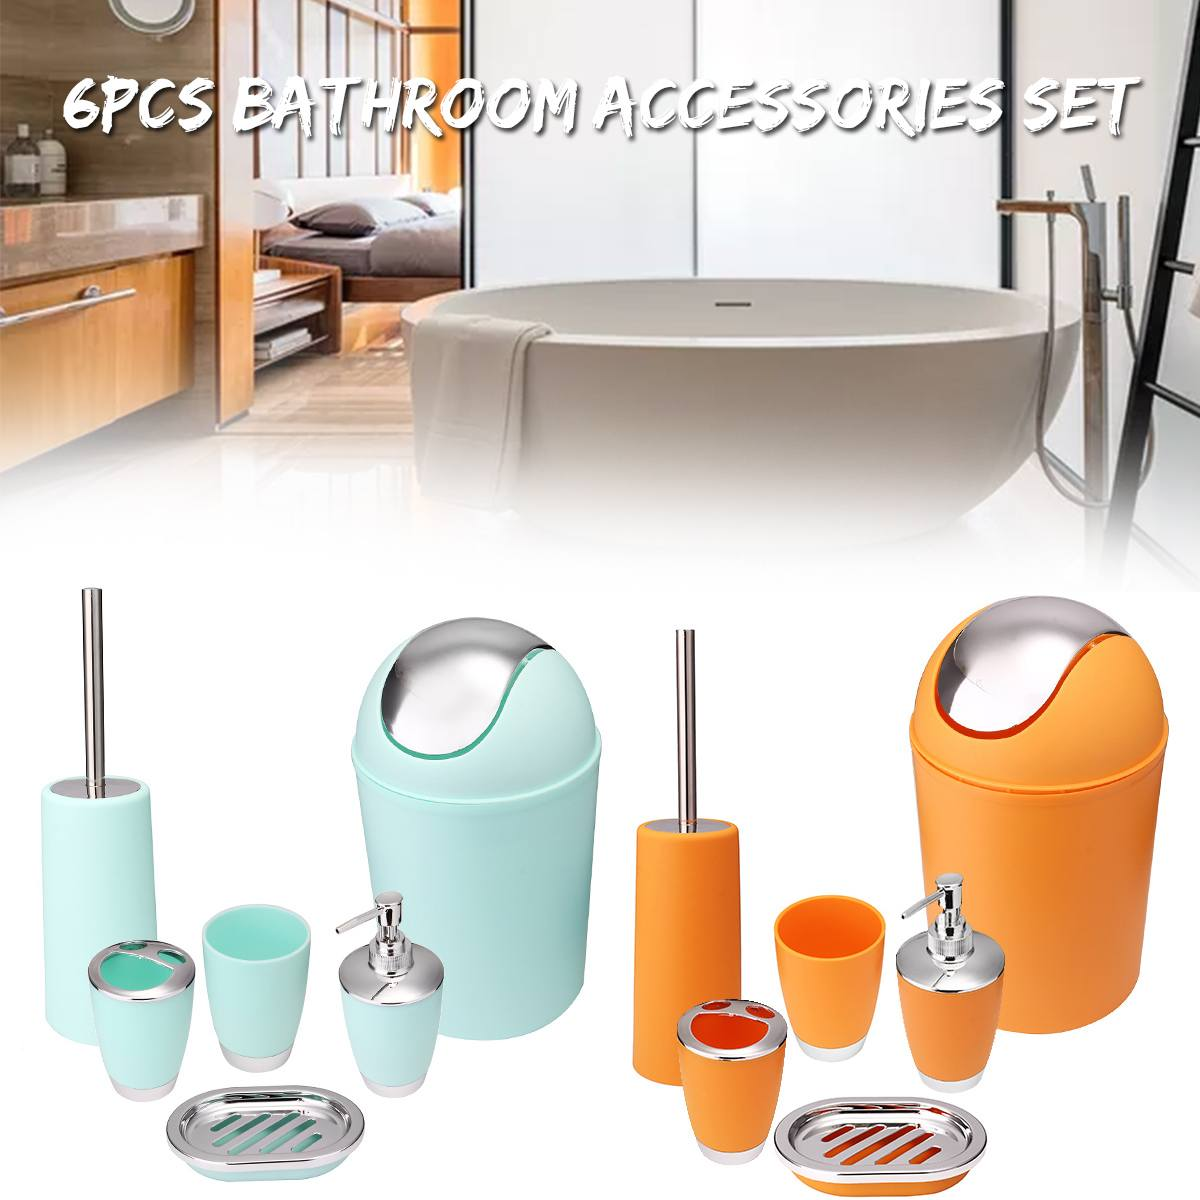 6pcs/set Bathroom Accessory Sets Lotion Dispenser Toothbrush Holder Tumbler Cup Soap Dish Toilet Brush Trash Can Home Decor6pcs/set Bathroom Accessory Sets Lotion Dispenser Toothbrush Holder Tumbler Cup Soap Dish Toilet Brush Trash Can Home Decor